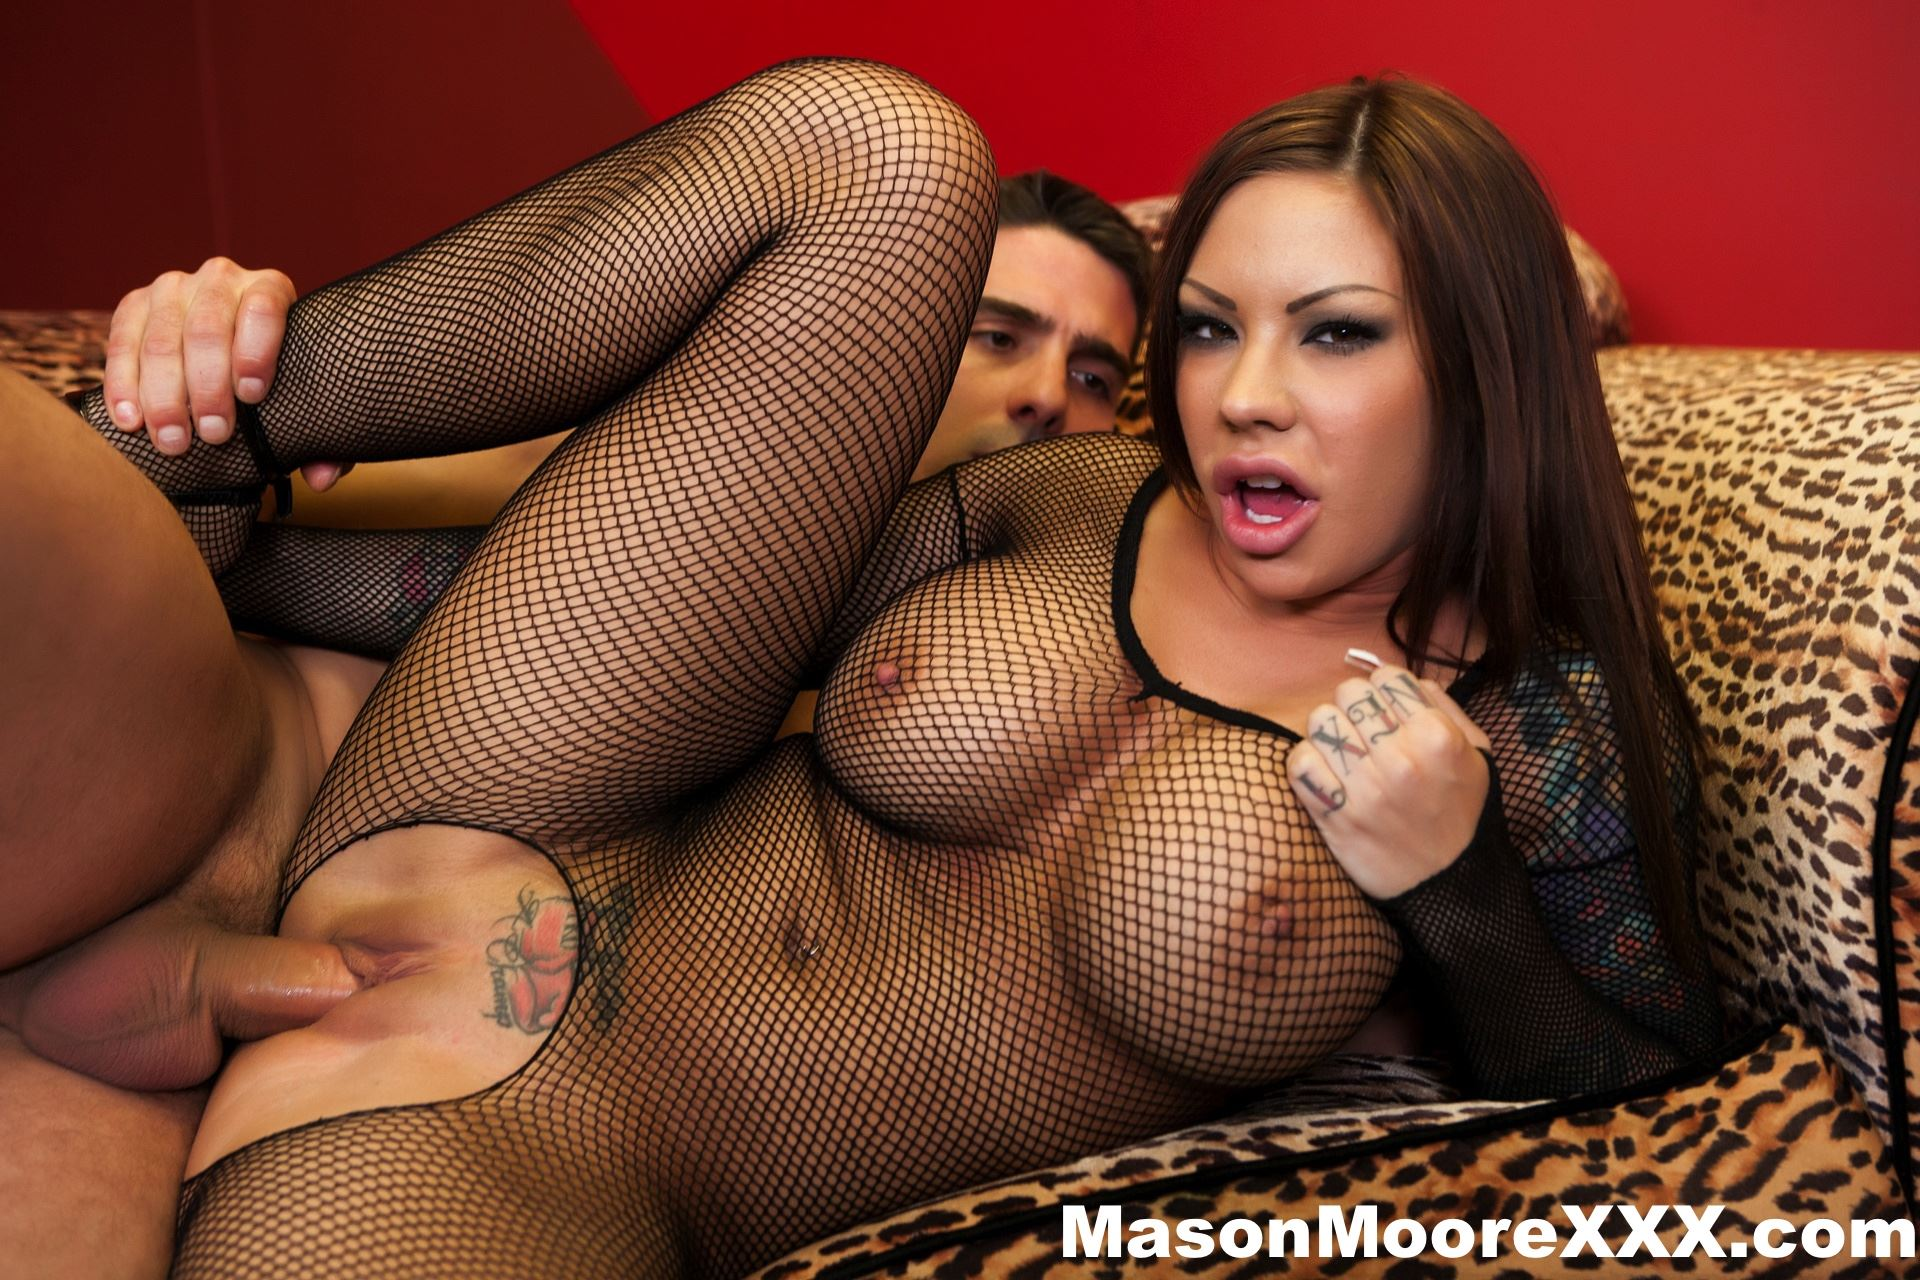 Gallery: Mason Moore gets anal fucked and cum in mouth